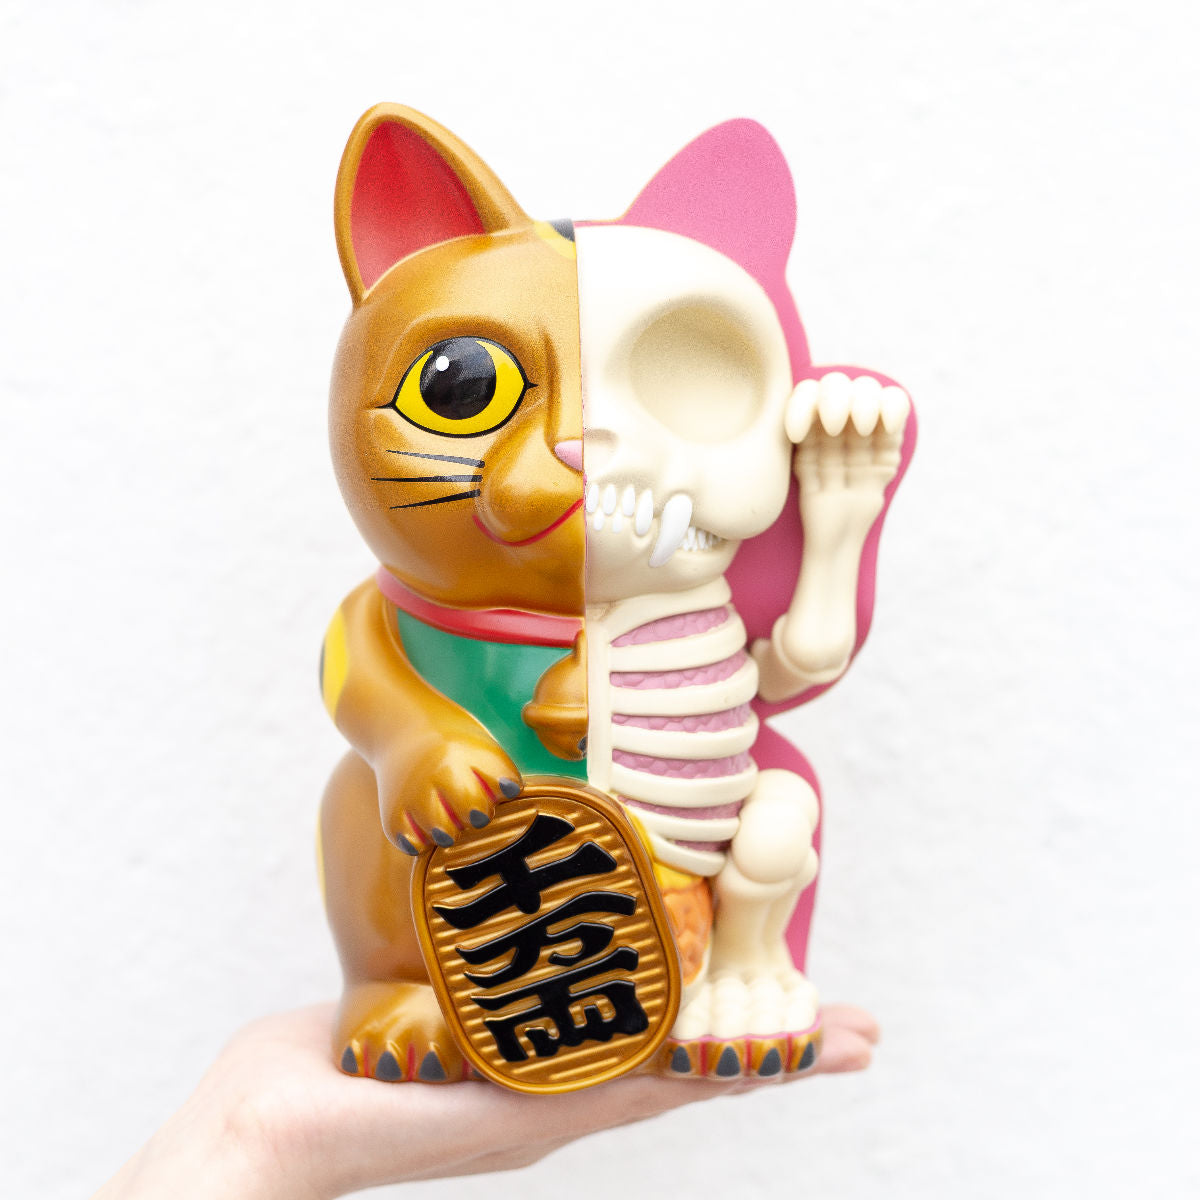 Fame Master Anatomy Maneki-neko money bank, gold